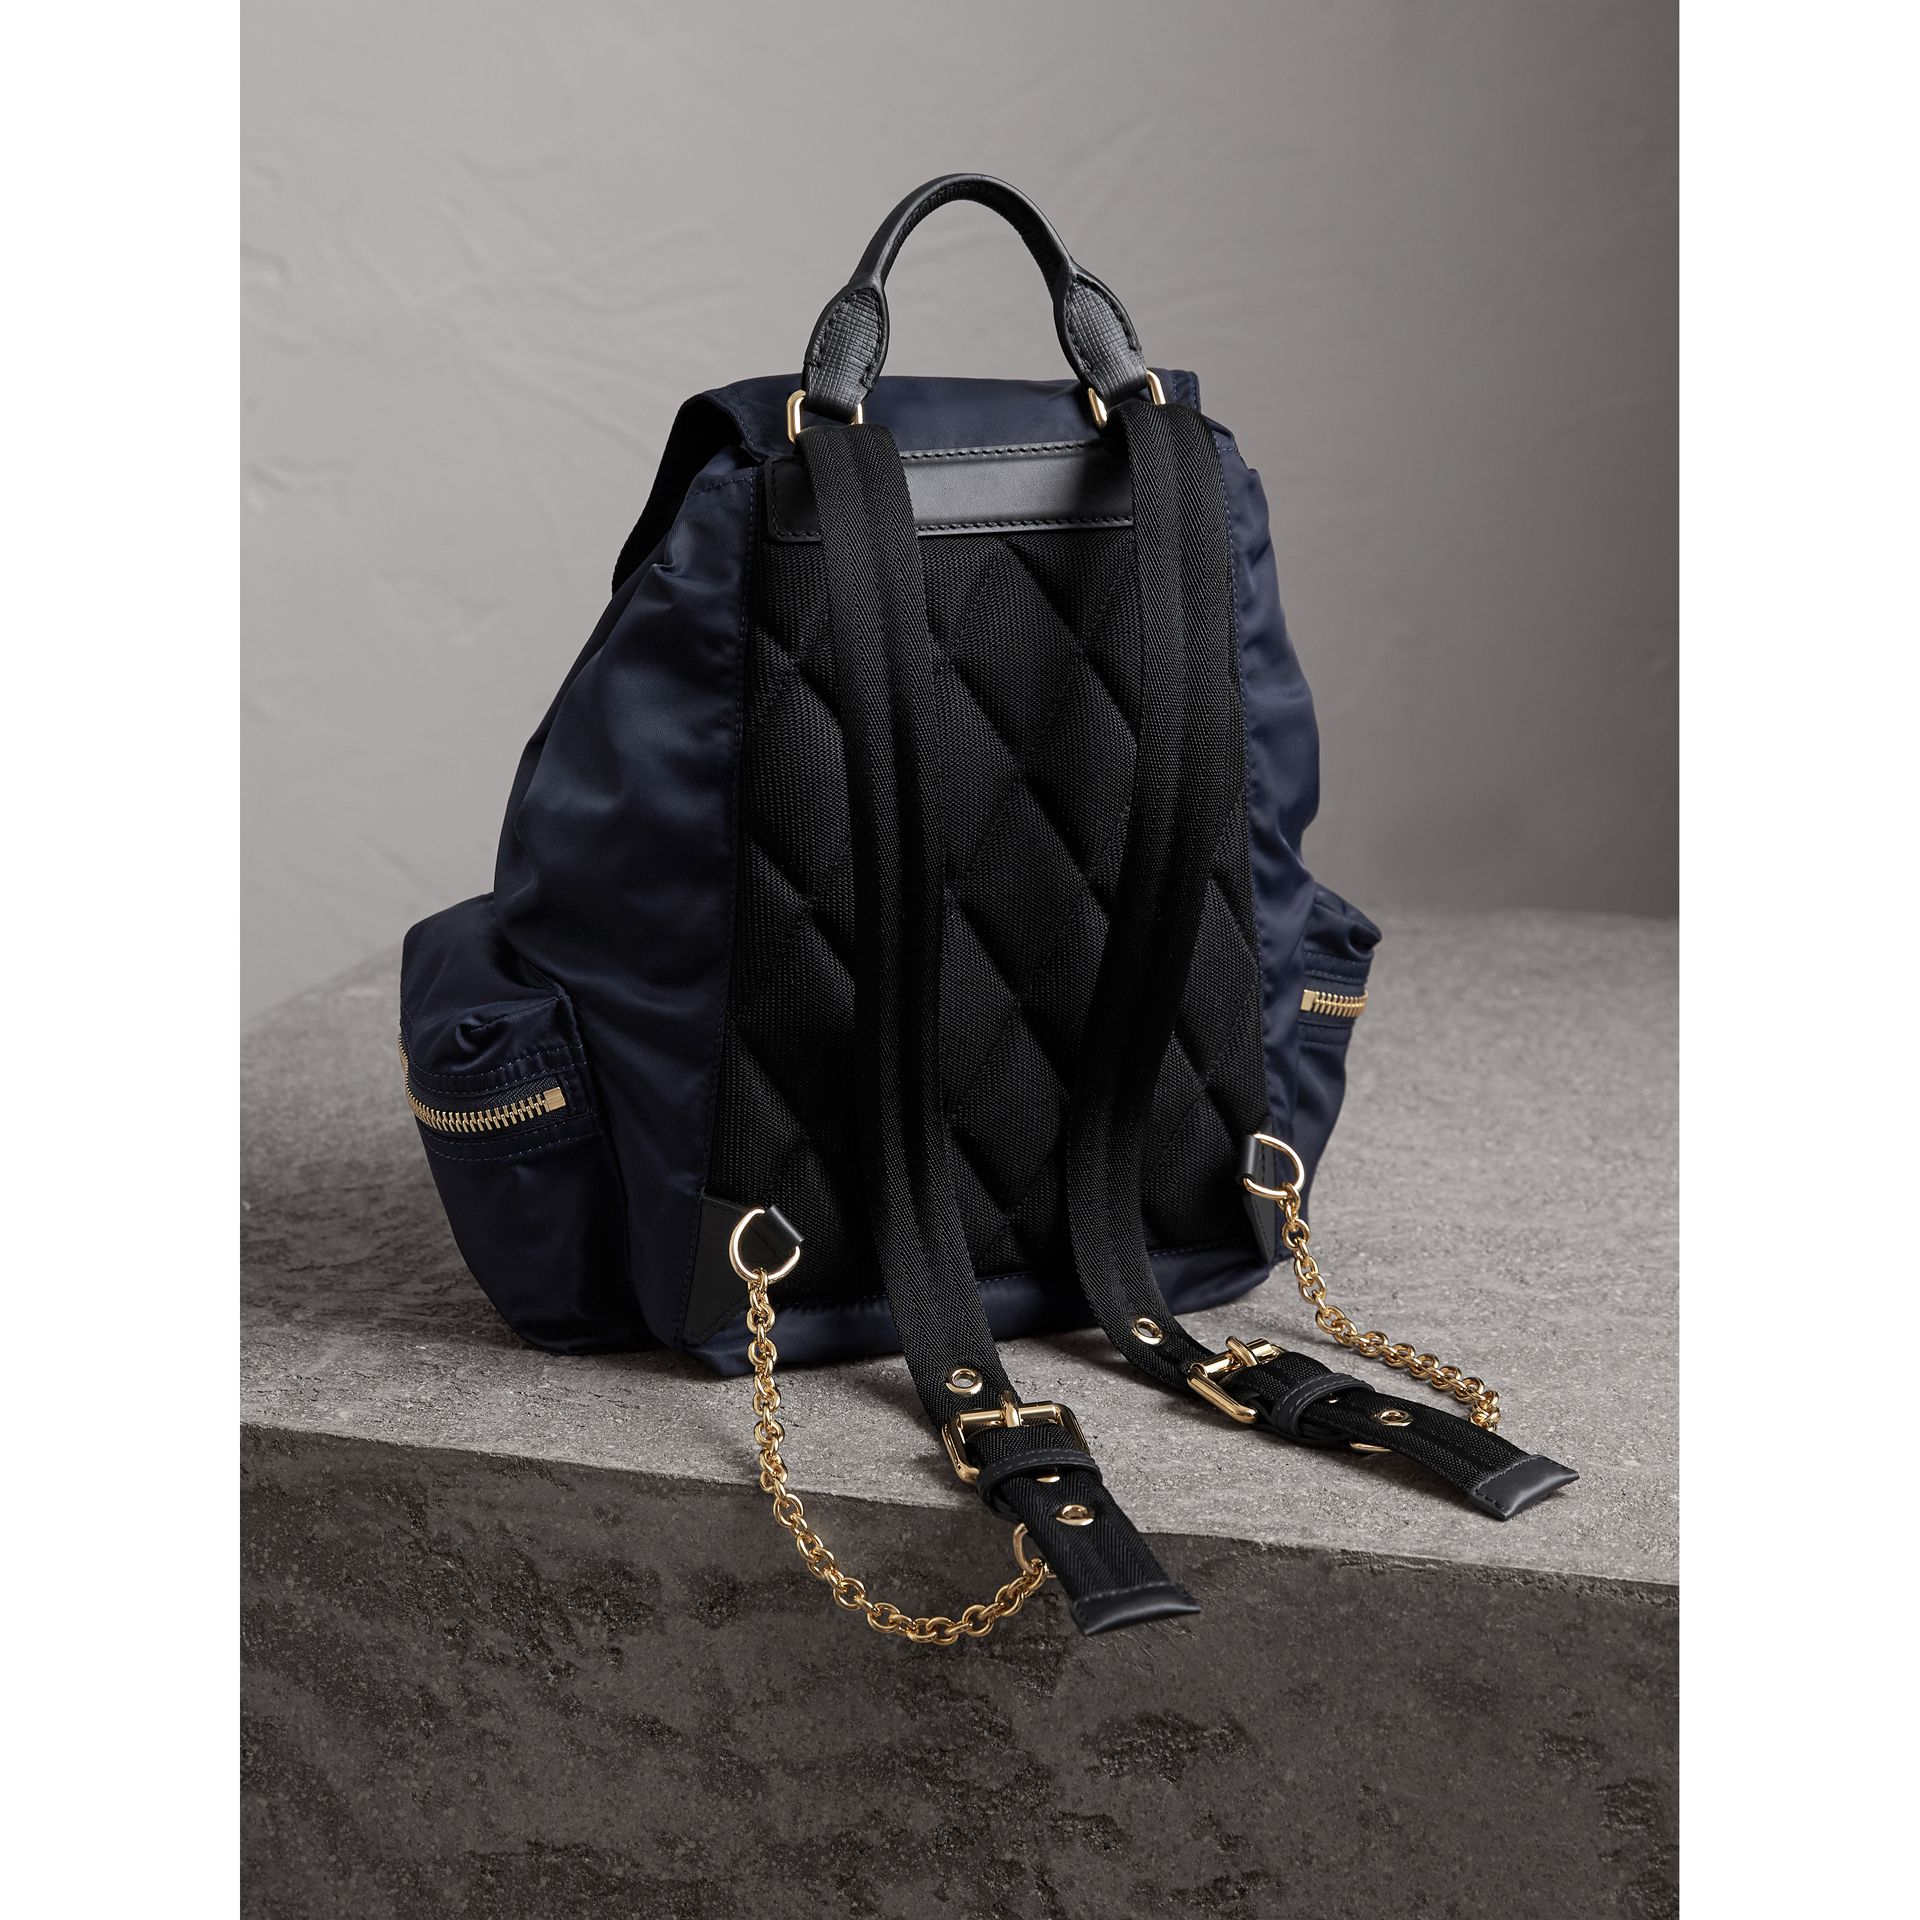 Sac The Rucksack moyen en nylon technique et cuir (Bleu Encre) - Femme | Burberry - photo de la galerie 4